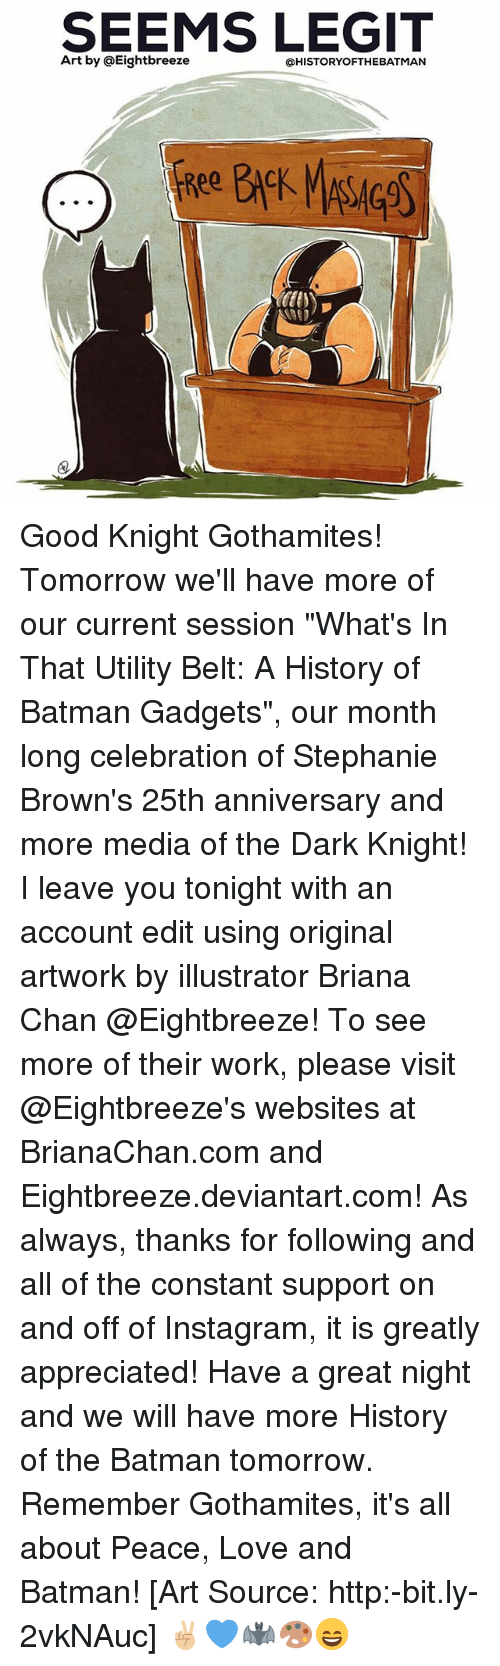 "Legitably: SEEMS LEGIT  Art by @Eightbreeze  @HISTORYOFTHEBATMAN Good Knight Gothamites! Tomorrow we'll have more of our current session ""What's In That Utility Belt: A History of Batman Gadgets"", our month long celebration of Stephanie Brown's 25th anniversary and more media of the Dark Knight! I leave you tonight with an account edit using original artwork by illustrator Briana Chan @Eightbreeze! To see more of their work, please visit @Eightbreeze's websites at BrianaChan.com and Eightbreeze.deviantart.com! As always, thanks for following and all of the constant support on and off of Instagram, it is greatly appreciated! Have a great night and we will have more History of the Batman tomorrow. Remember Gothamites, it's all about Peace, Love and Batman! [Art Source: http:-bit.ly-2vkNAuc] ✌🏼💙🦇🎨😄"